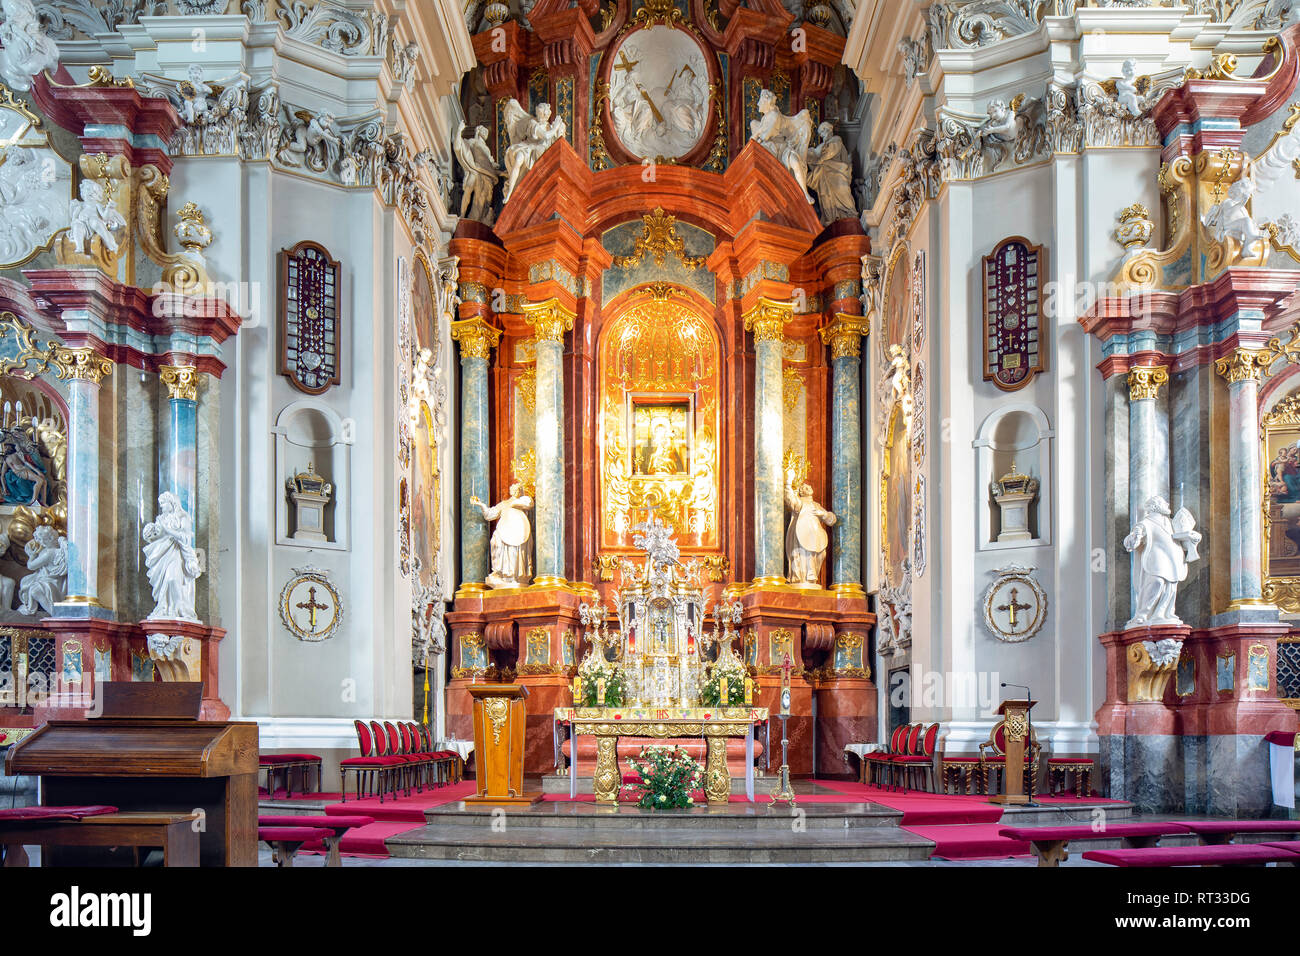 Basilica on the Holy Mountain in the village Glogowko / Gostyn, Poland. Historic renaissance architecture. Interior. - Stock Image